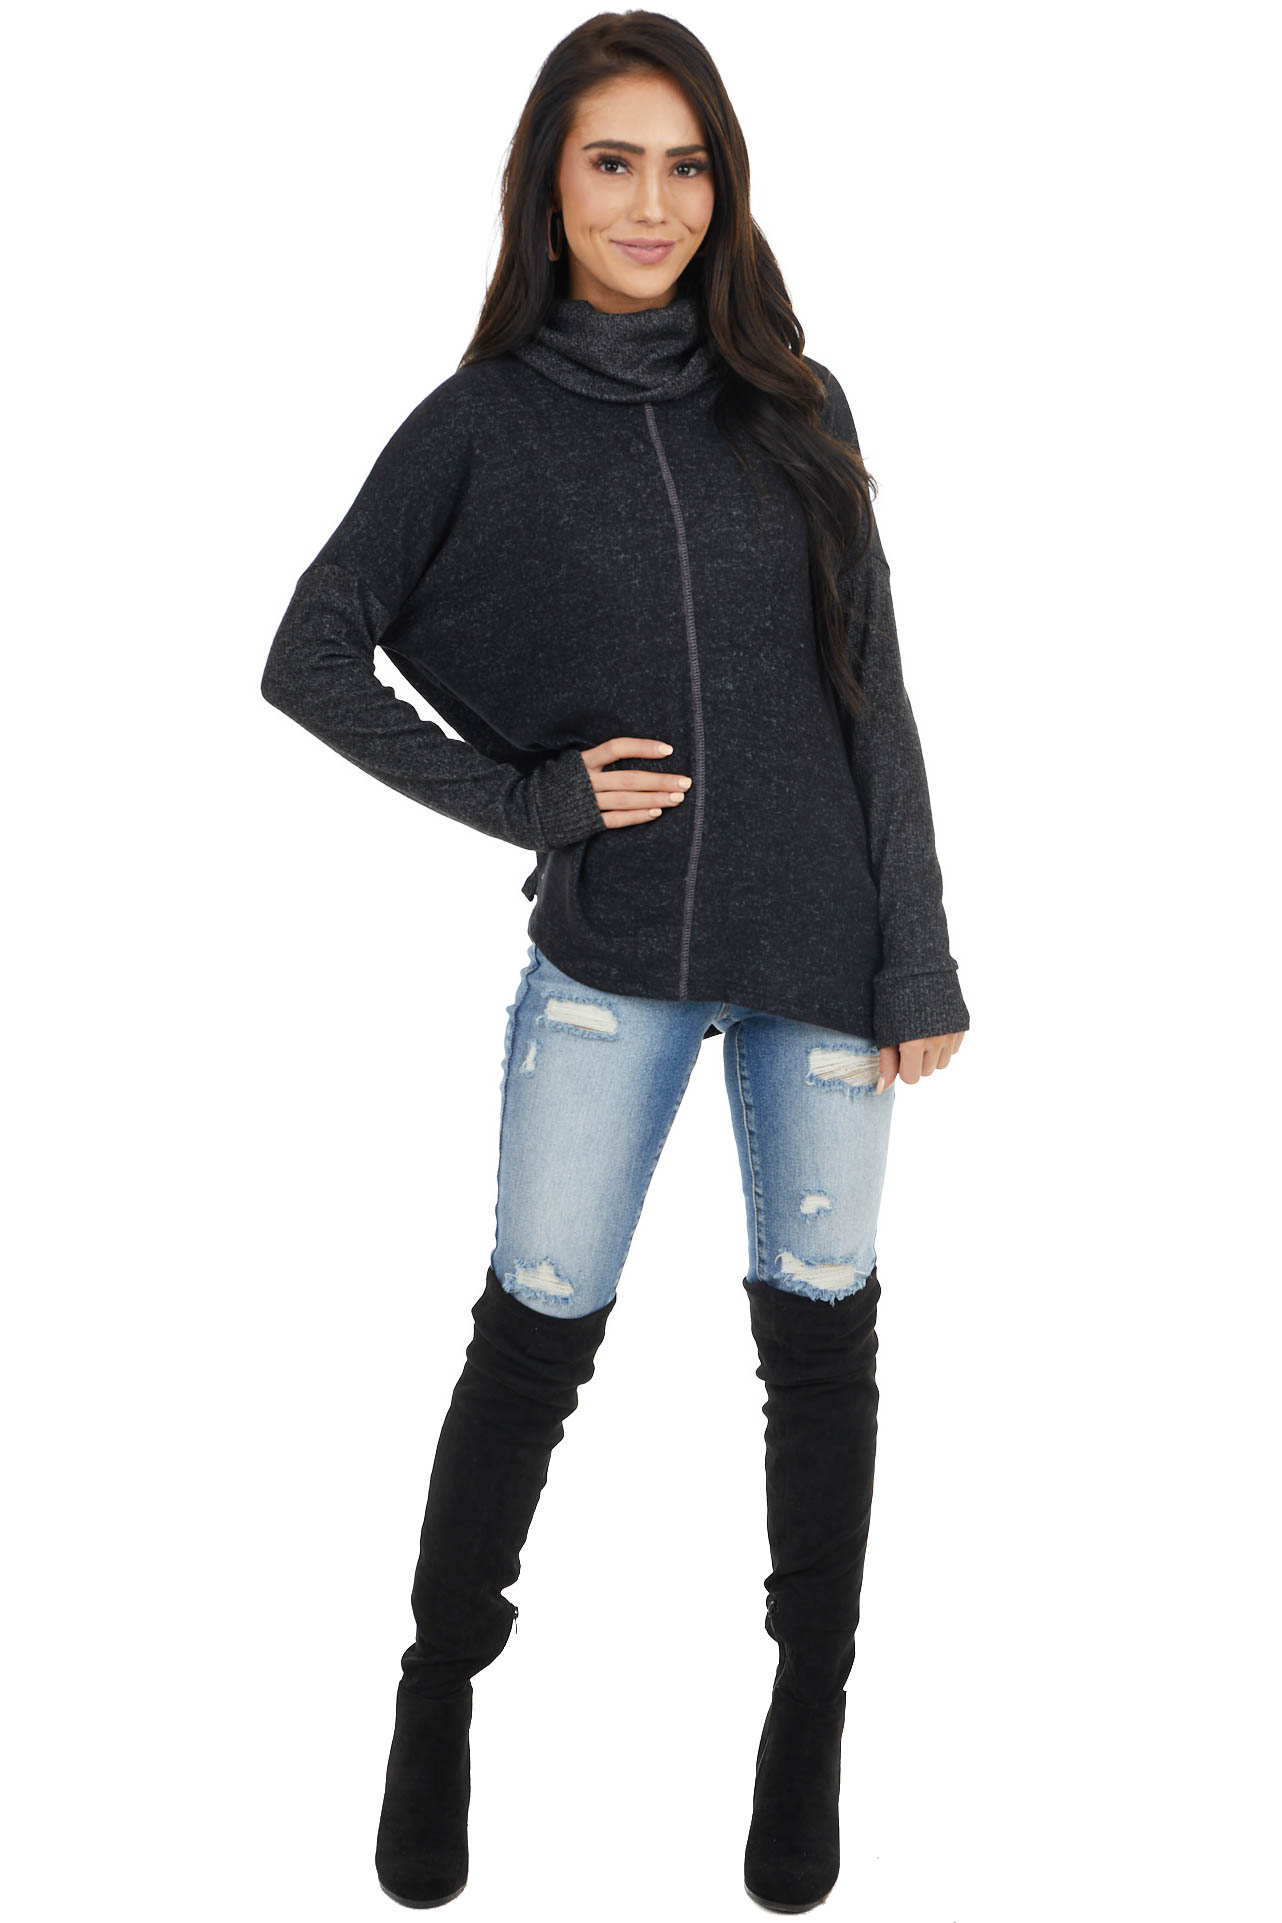 Black Cowl Neck Knit Top with Long Sleeves and Ribbed Detail